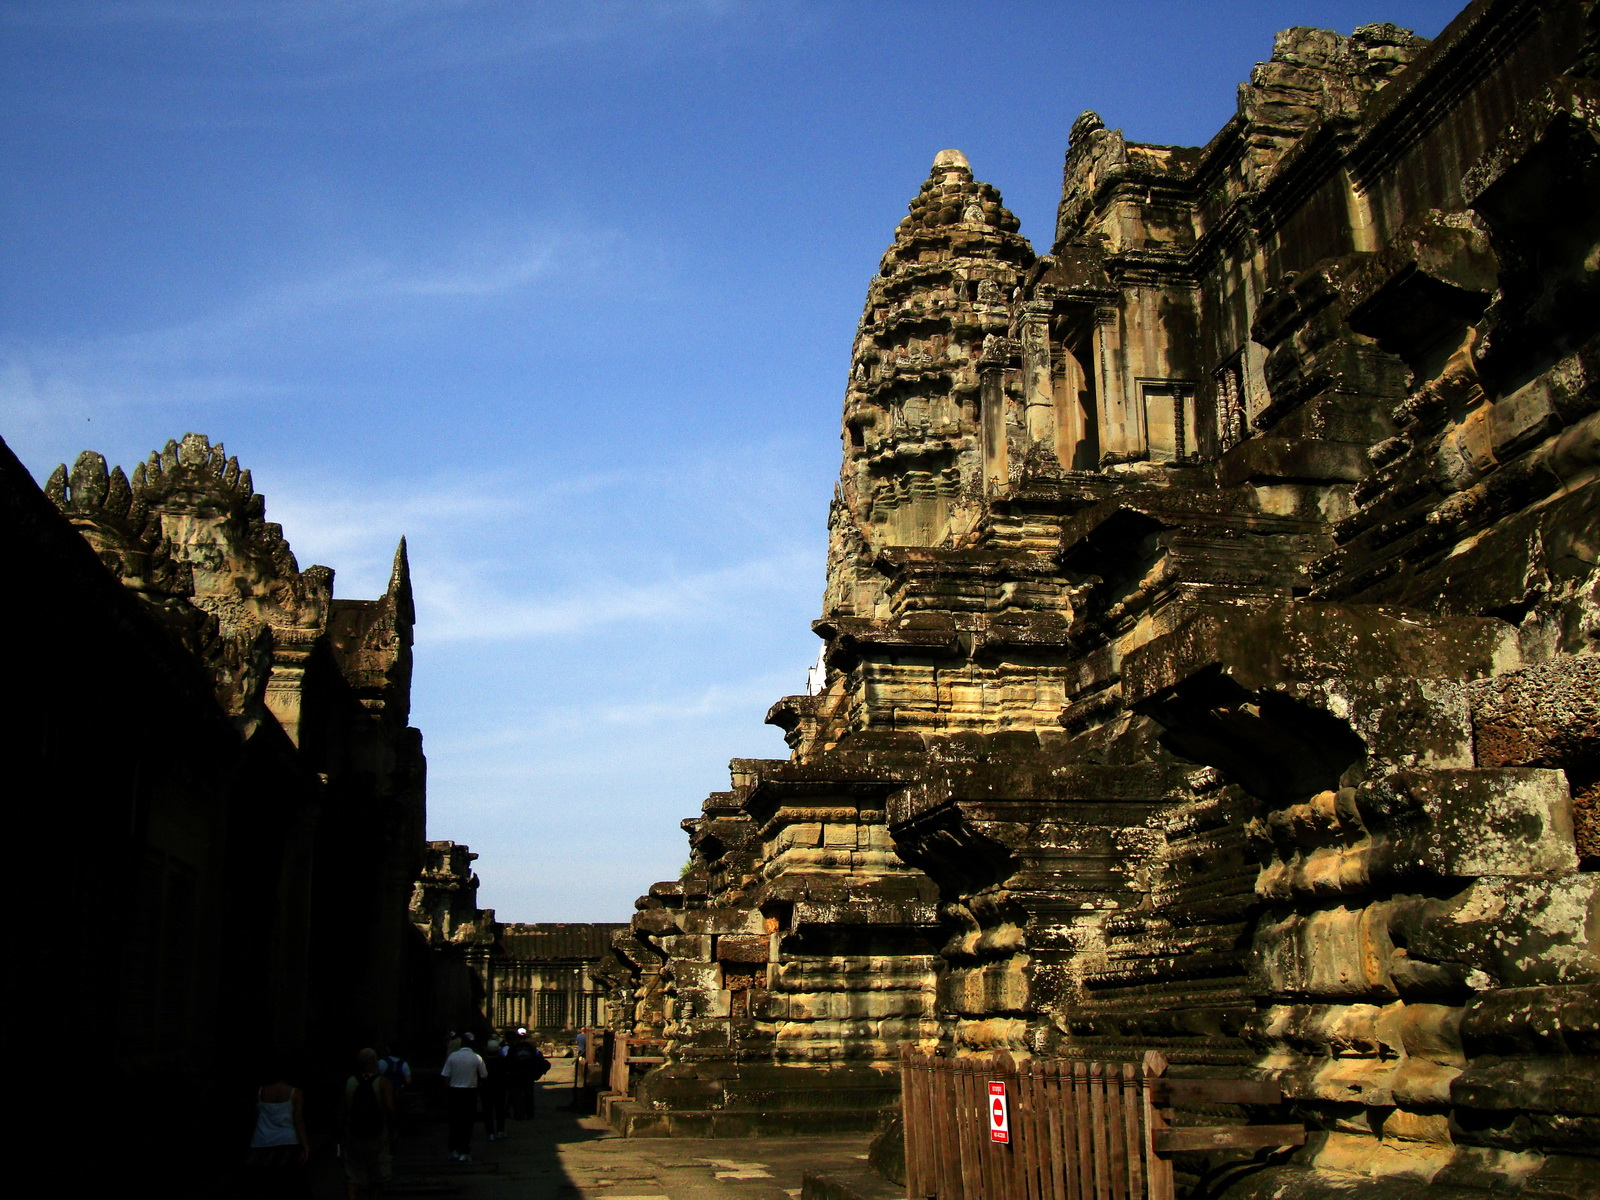 Angkor Wat Khmer architecture inner sanctuary towers 02